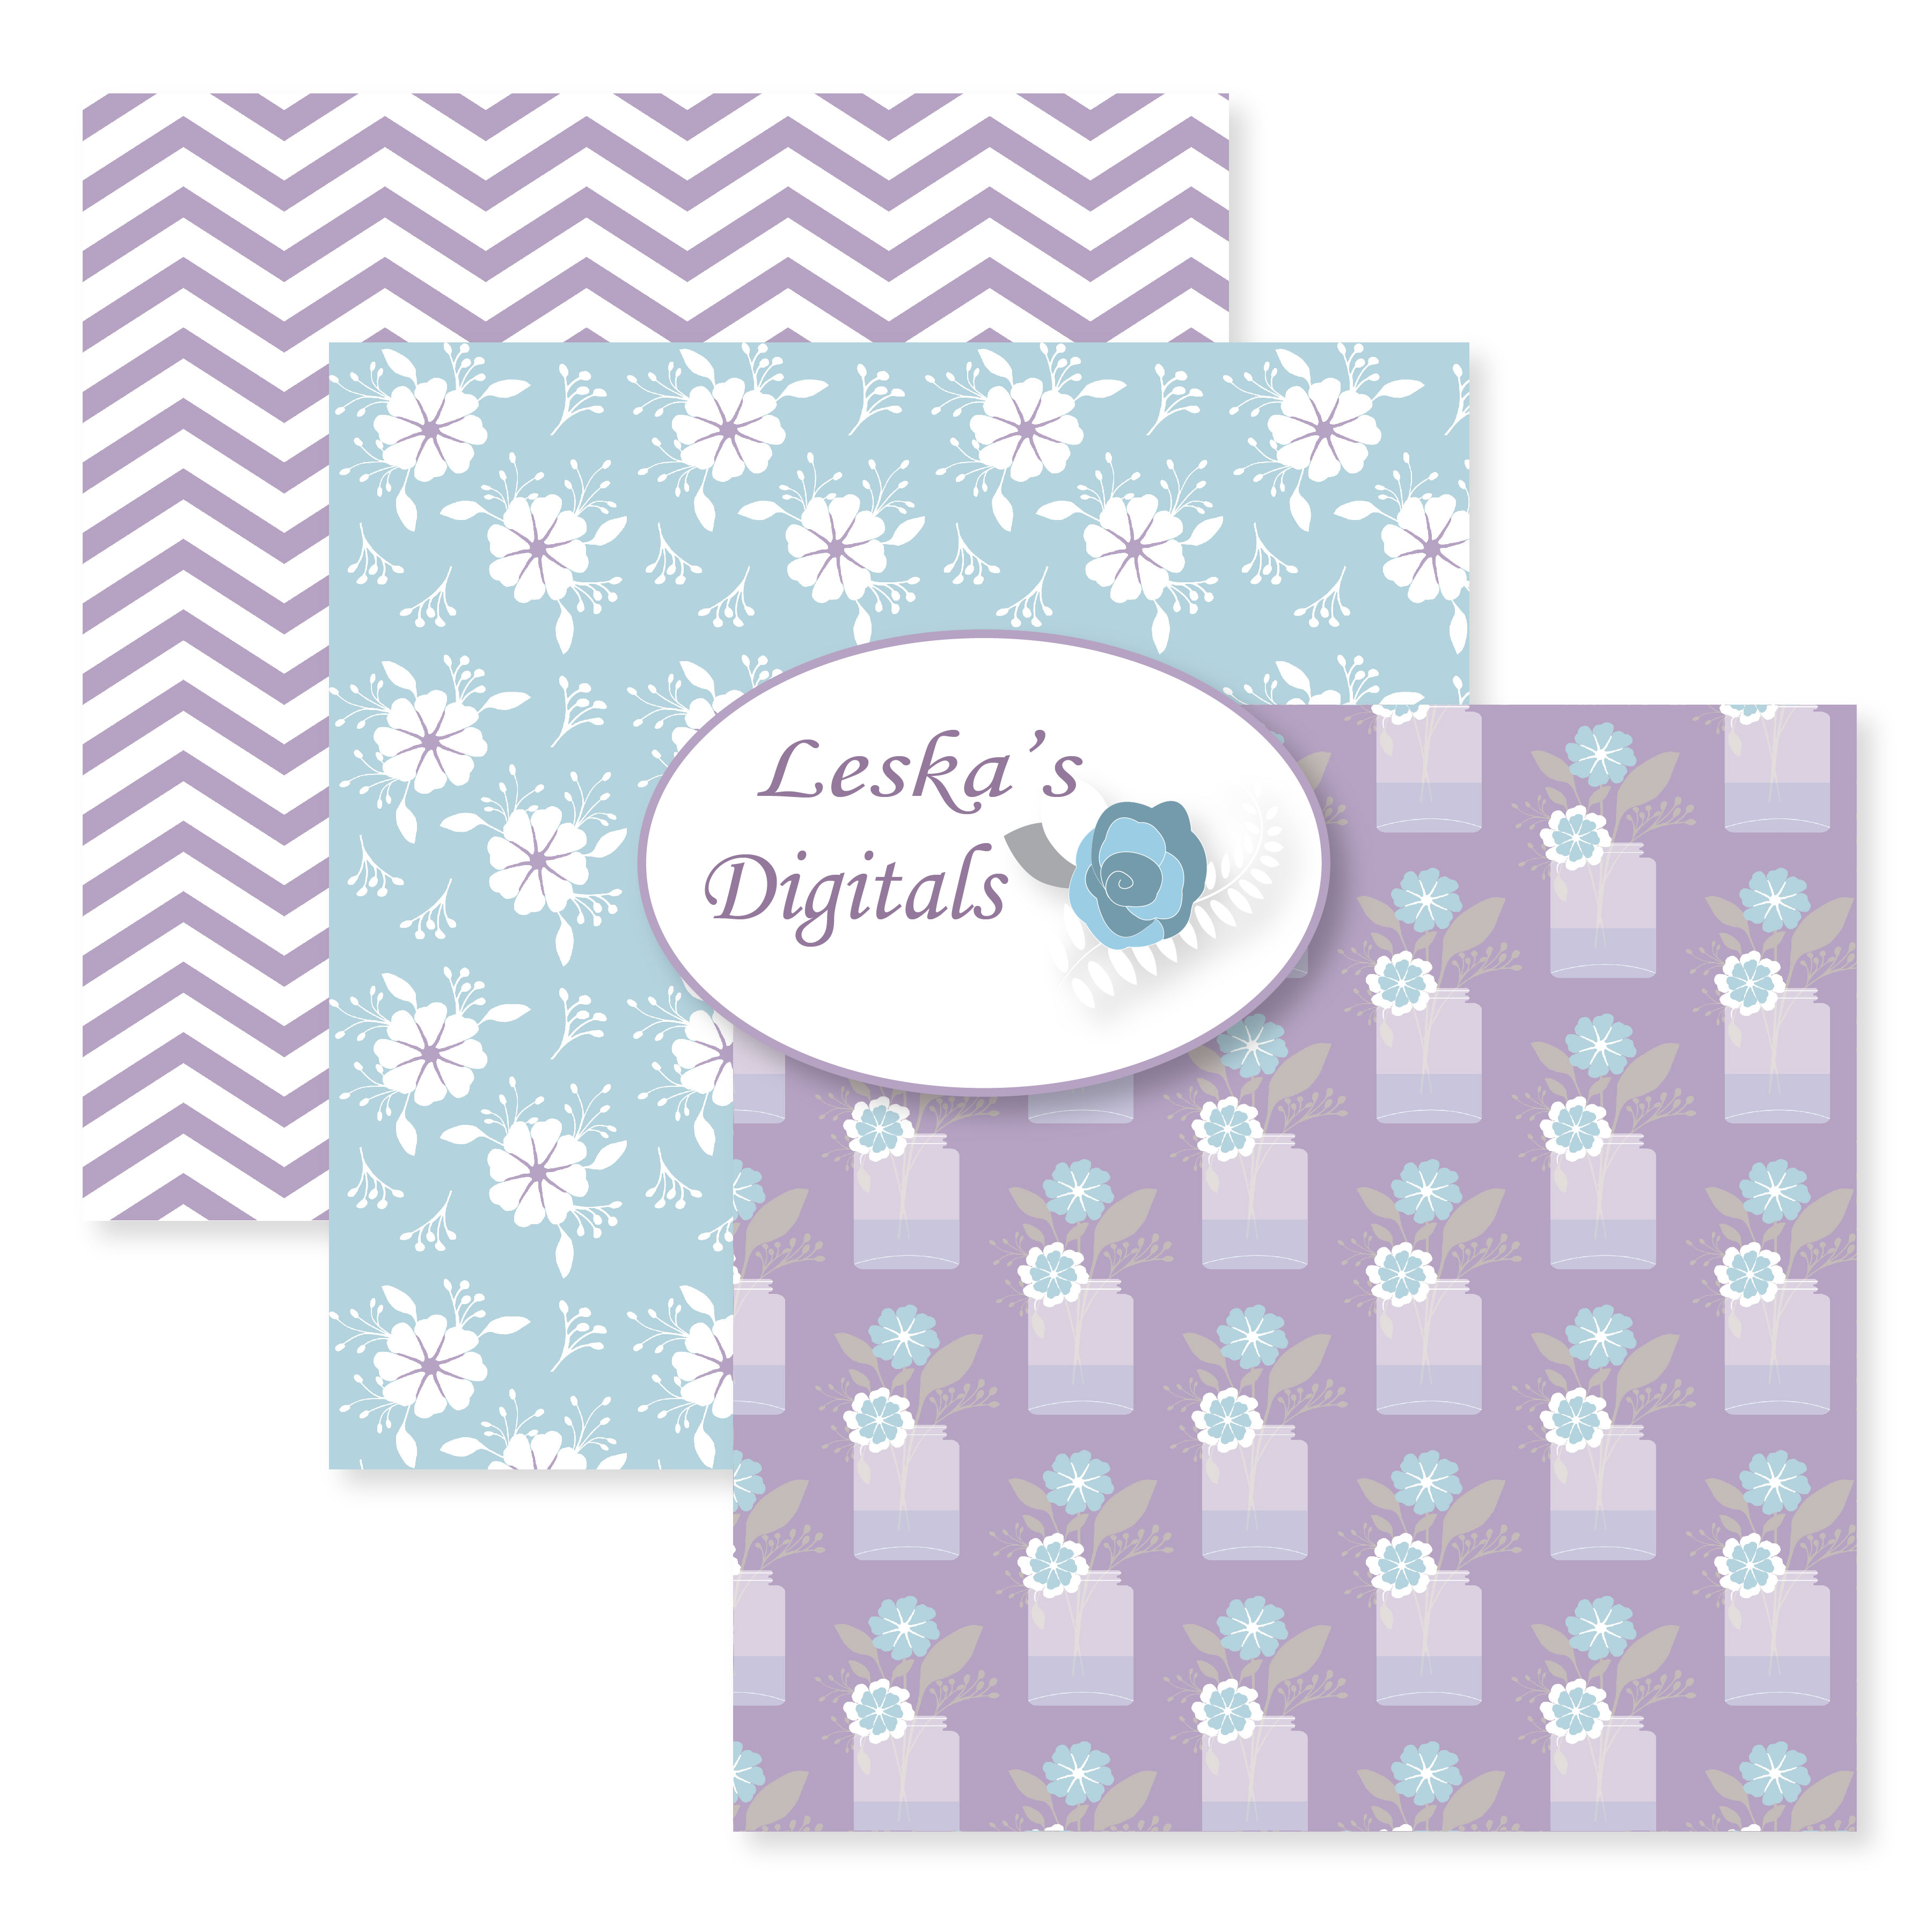 Floral Digital Paper Pack in Lavender, lilac, purple example image 5